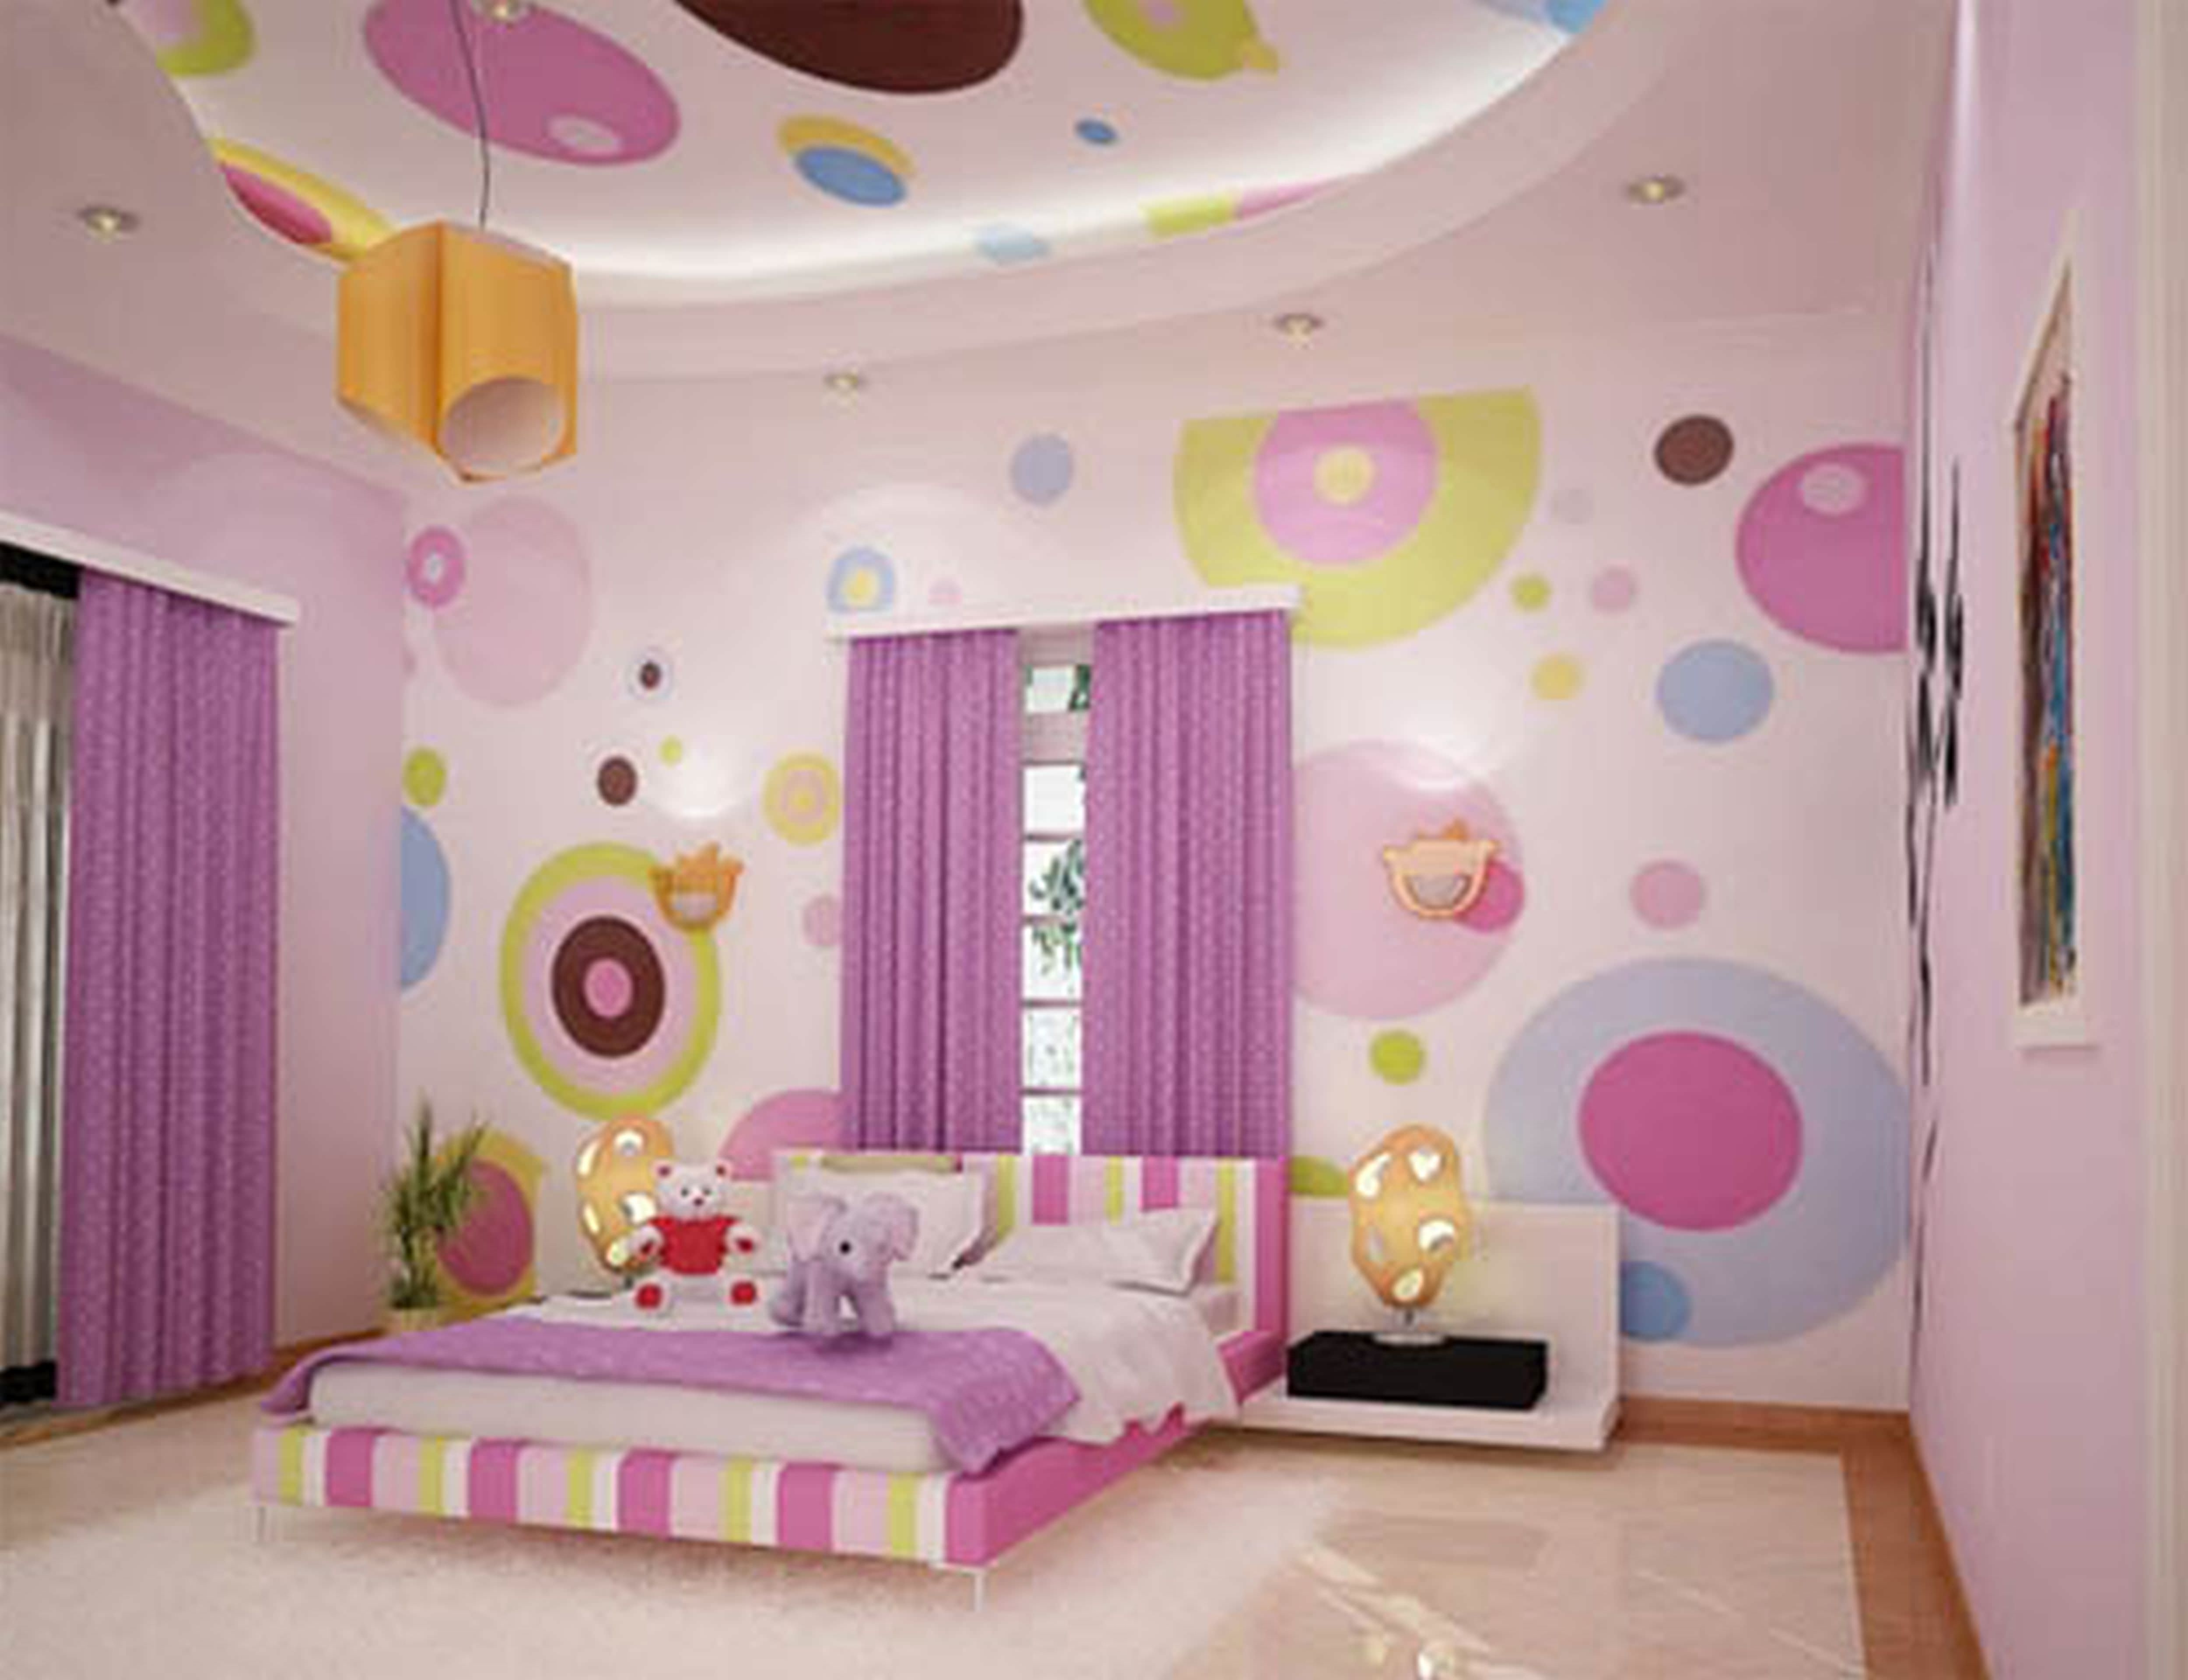 15+ Polka Dot Interior Wall Designs, Decor Ideas